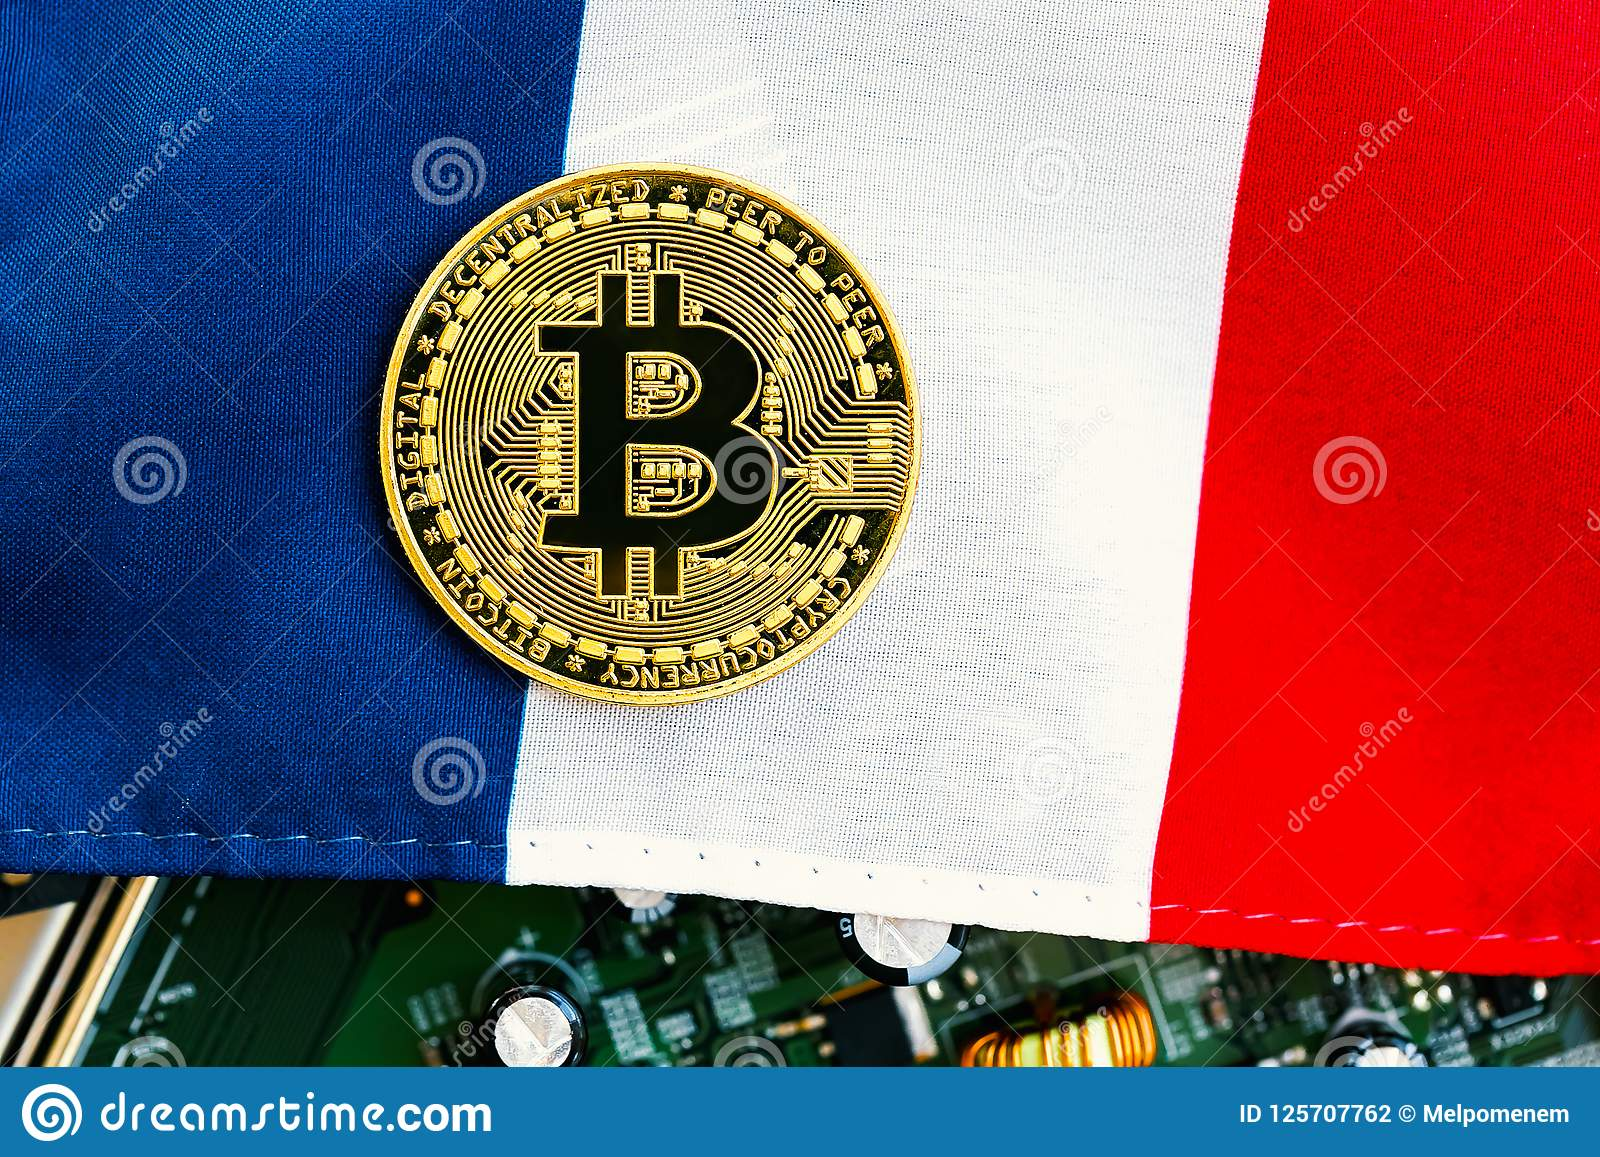 Bitcoin Cryptocurrency Coin With Flag Stock Photo - Image of national, flag: 125707762